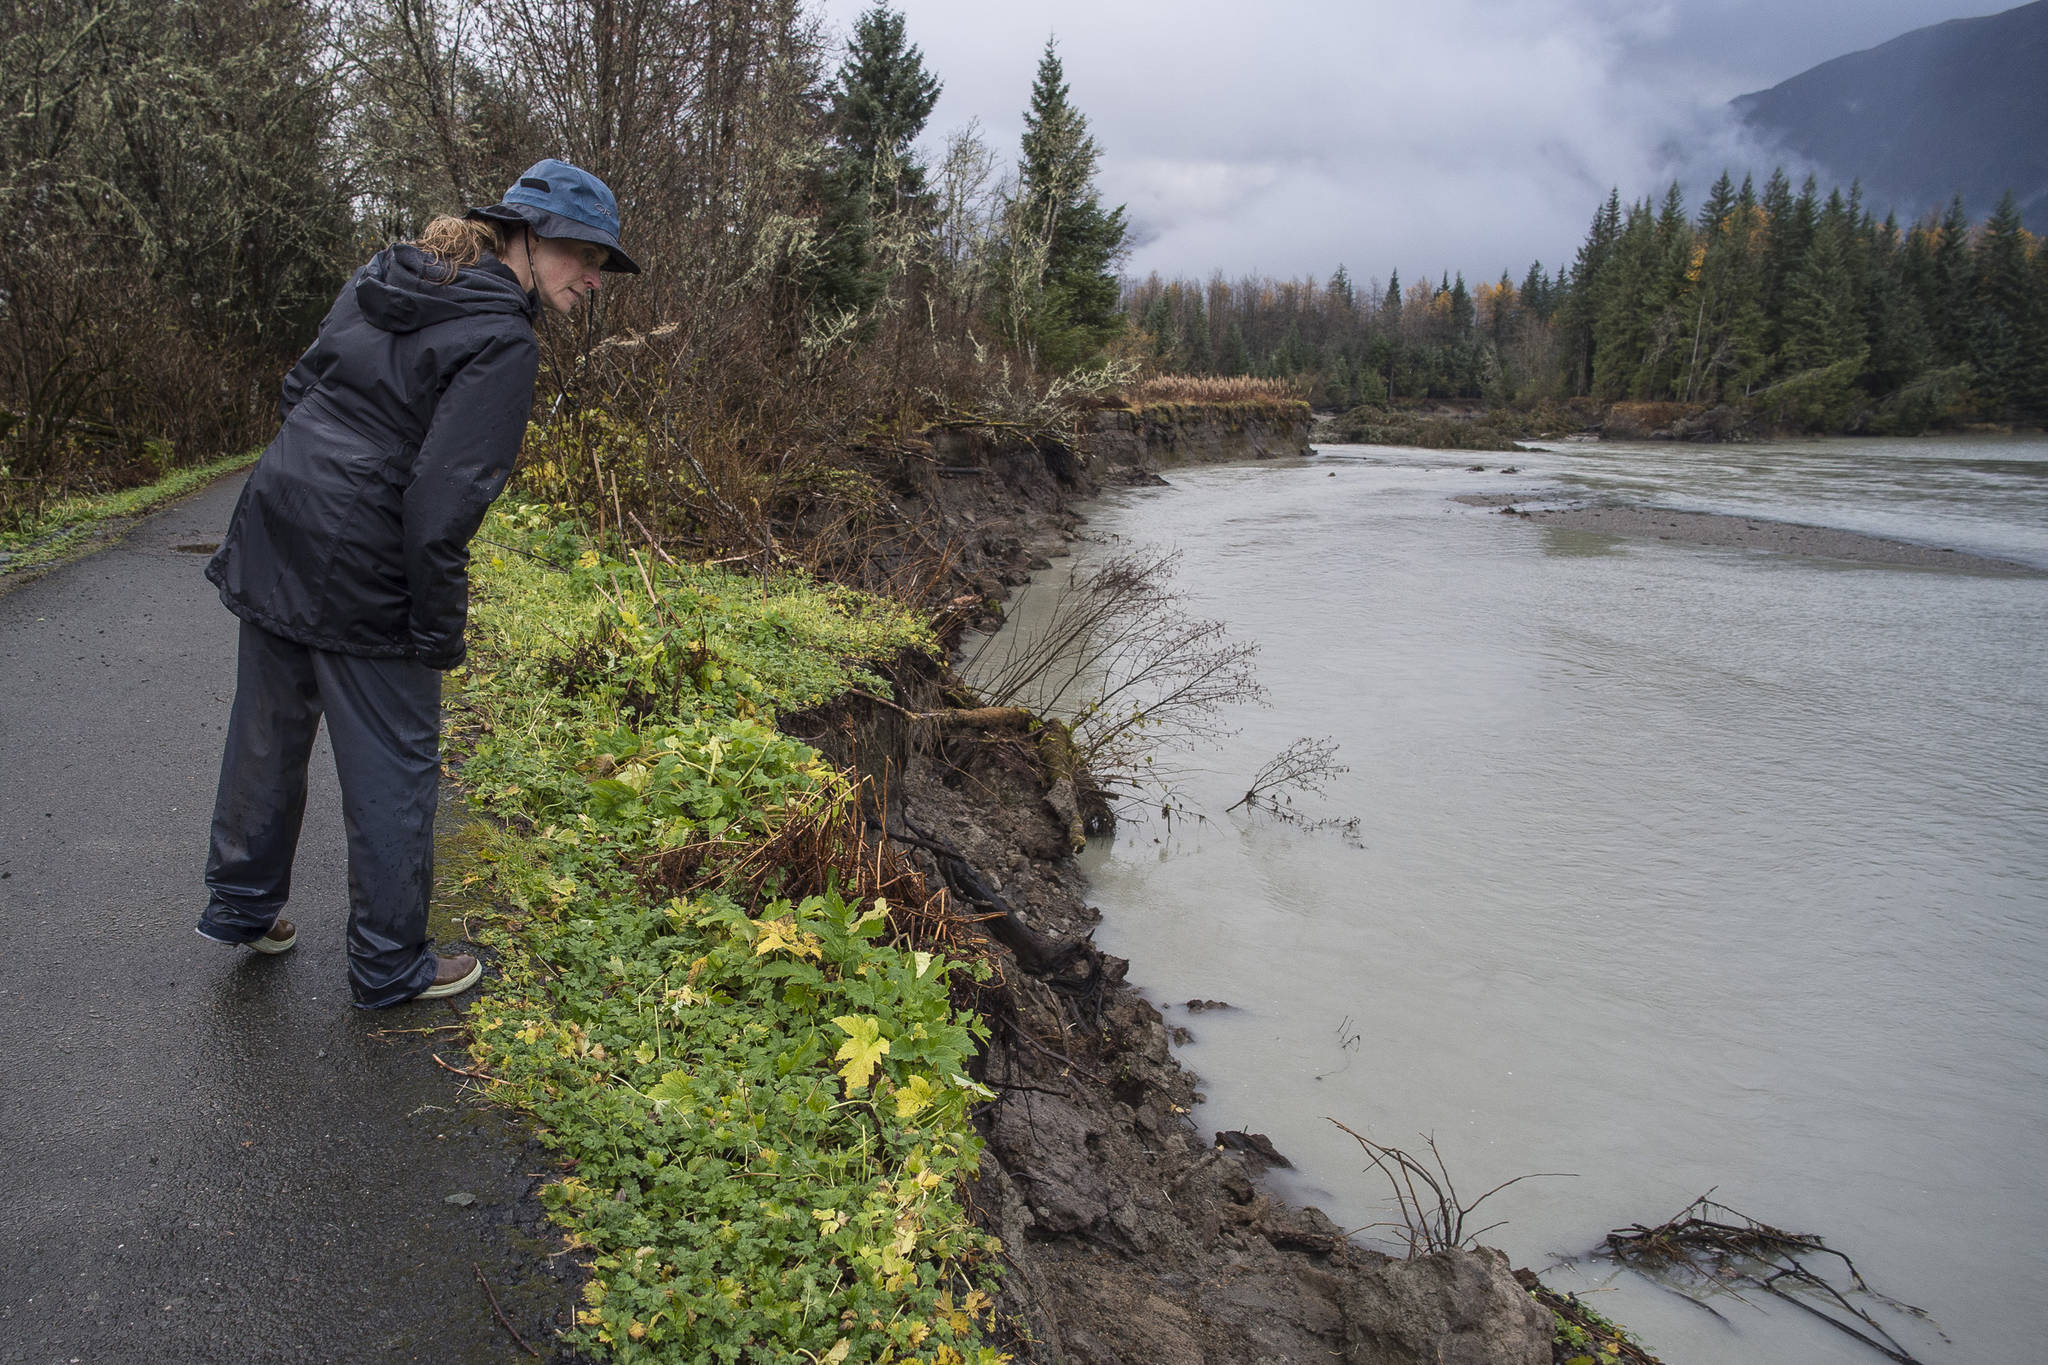 Sonia Nagorski, assistant professor of Geology Arts and Sciences at the University of Alaska Southeast, investigates erosion below the broken oxbow along the Mendenhall River on Wednesday, Oct. 17, 2018. The river cut through the meander bend just north of the Brotherhood Bridge last this summer. (Michael Penn | Juneau Empire)